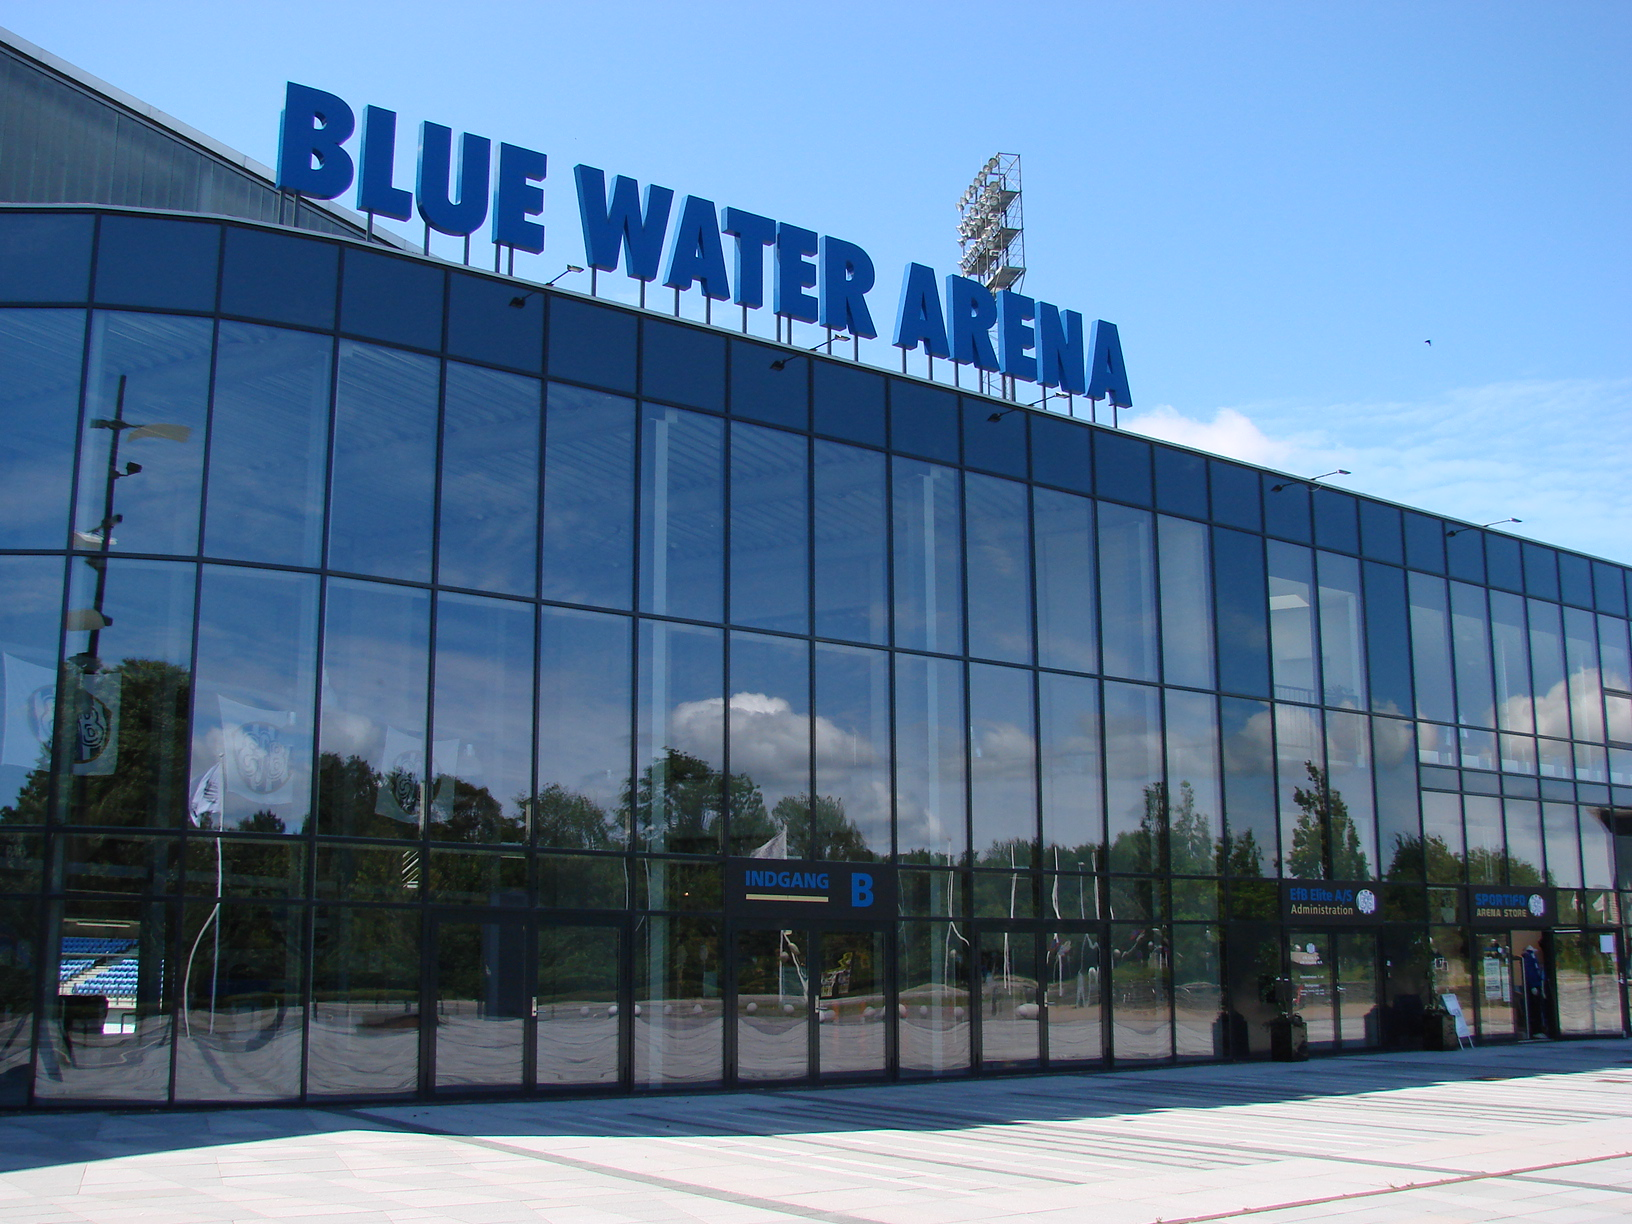 Blue Water Arena